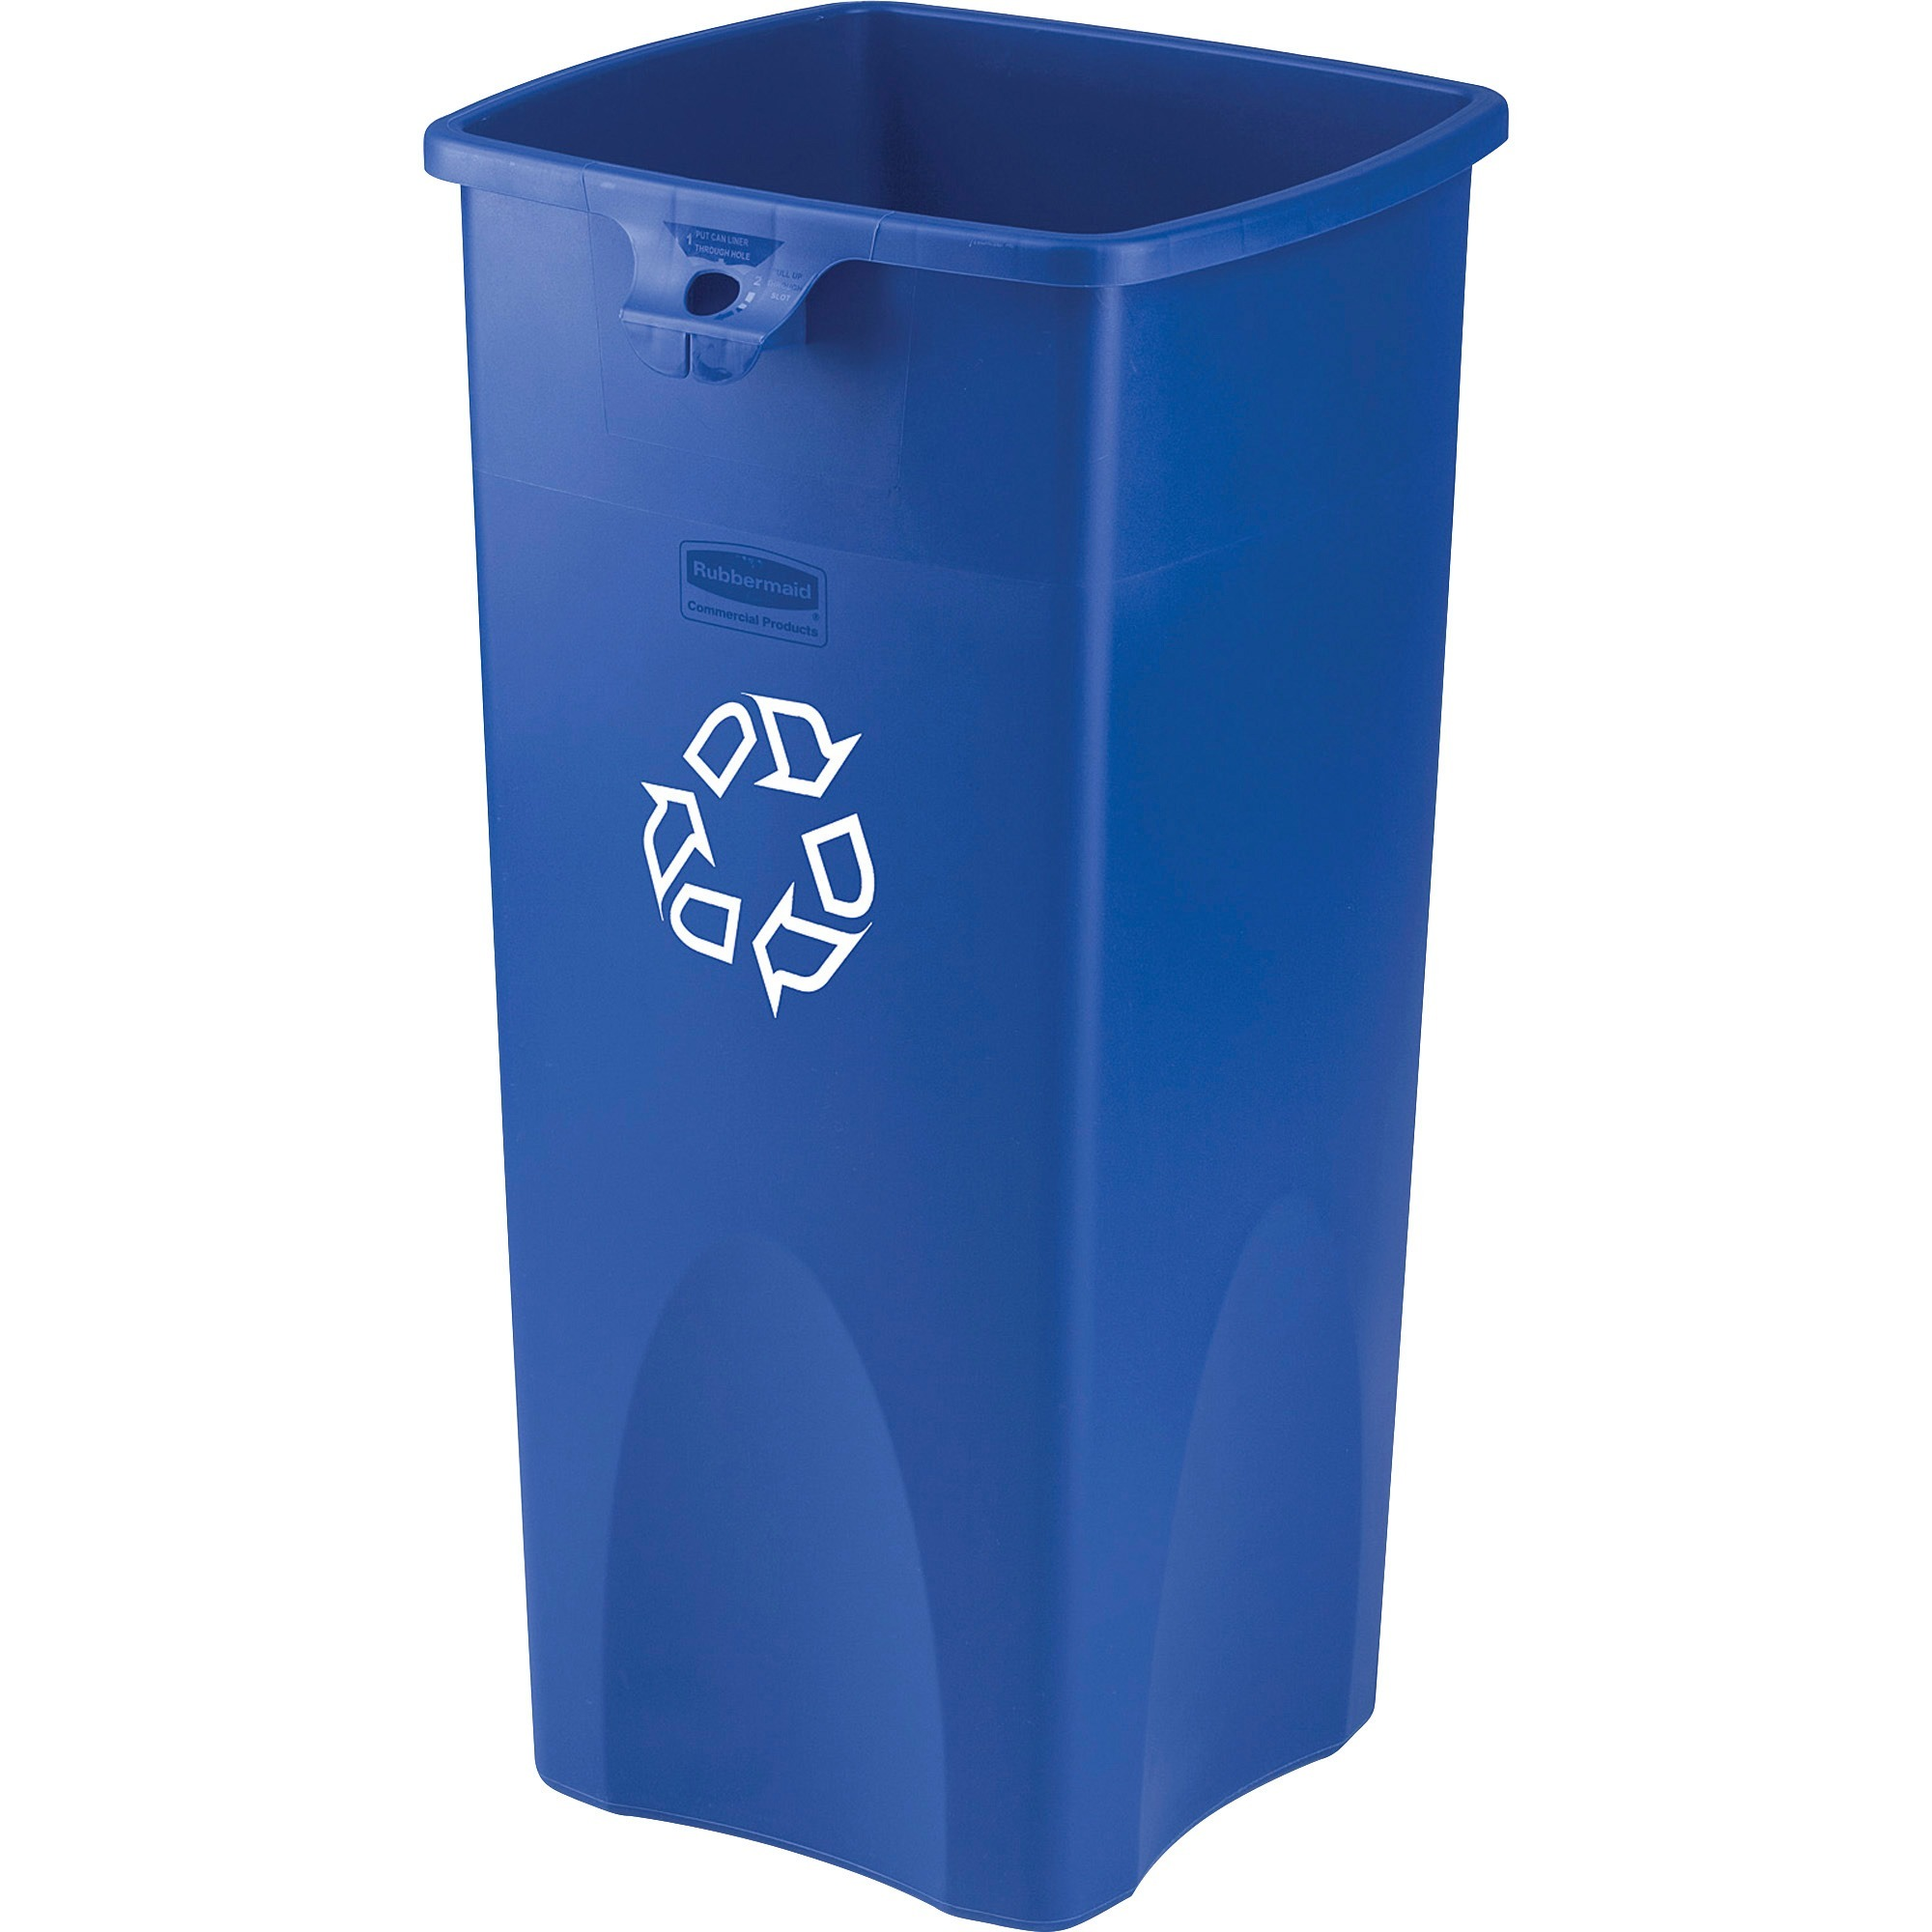 Rubbermaid Square Recycling Container, Blue